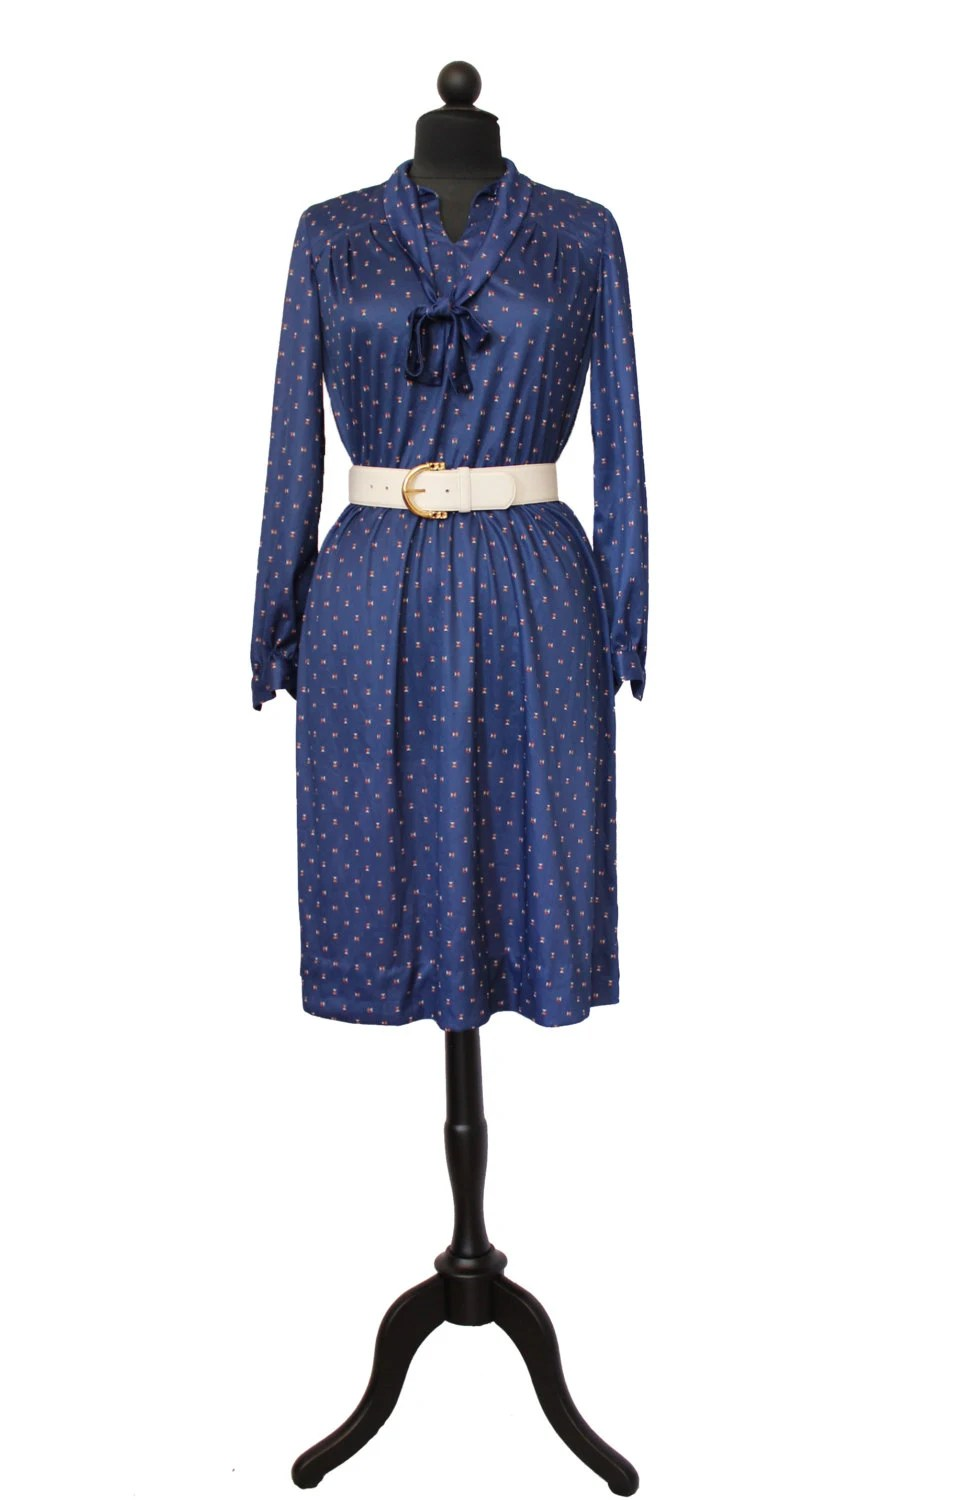 Bulk Snap Jewelry Secretary Dress Vintage Navy Blue Long Sleeved Dress